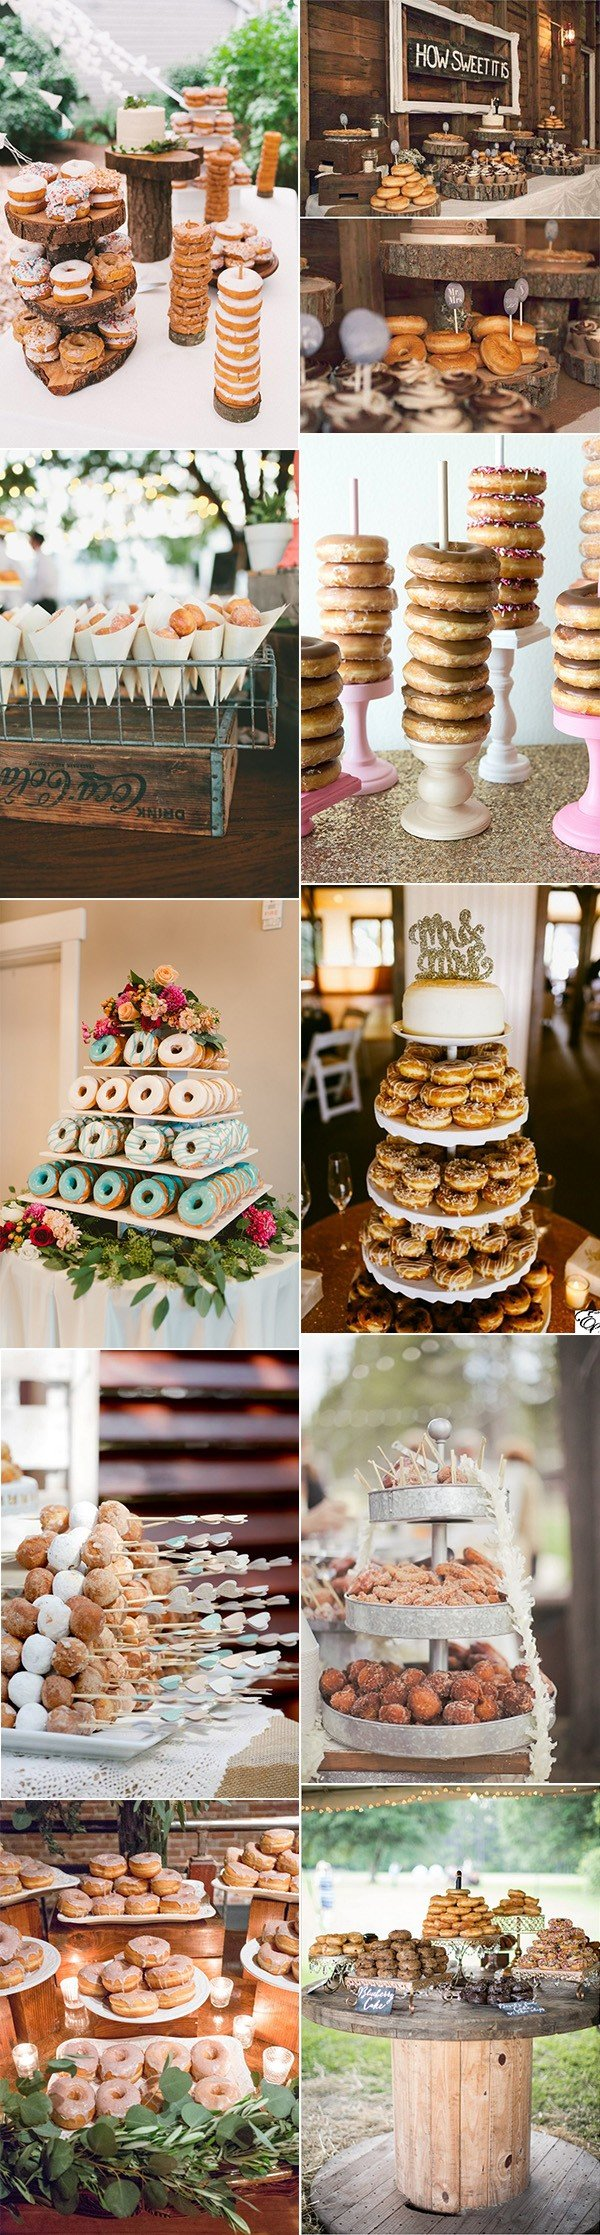 wedding dessert bar ideas with donuts